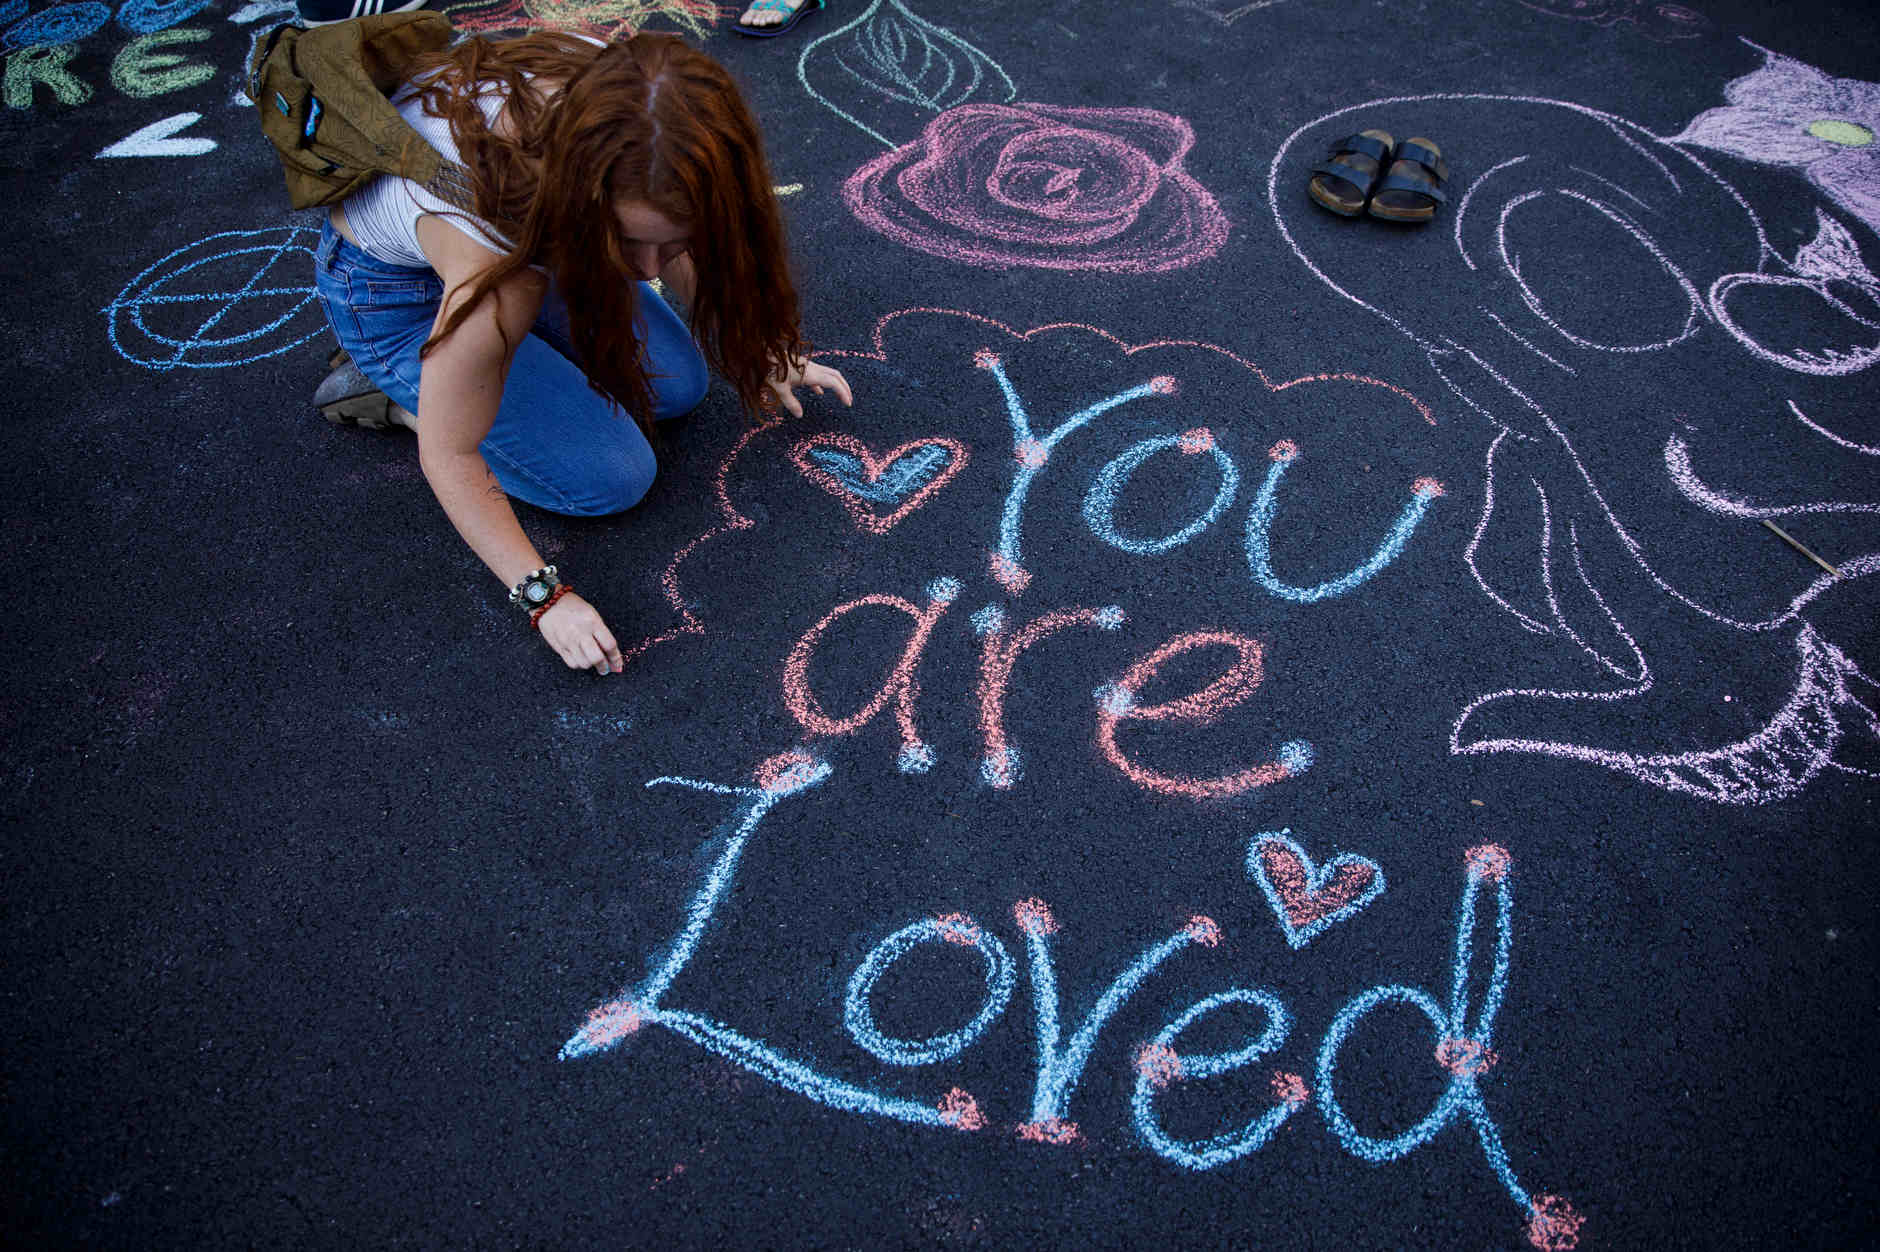 A student writes a message on the pavement using sidewalk chalk during the First Thursdays Festival on the Arts Plaza at IU Bloomington on Thursday, Sept. 5, 2019. (James Brosher/Indiana University)